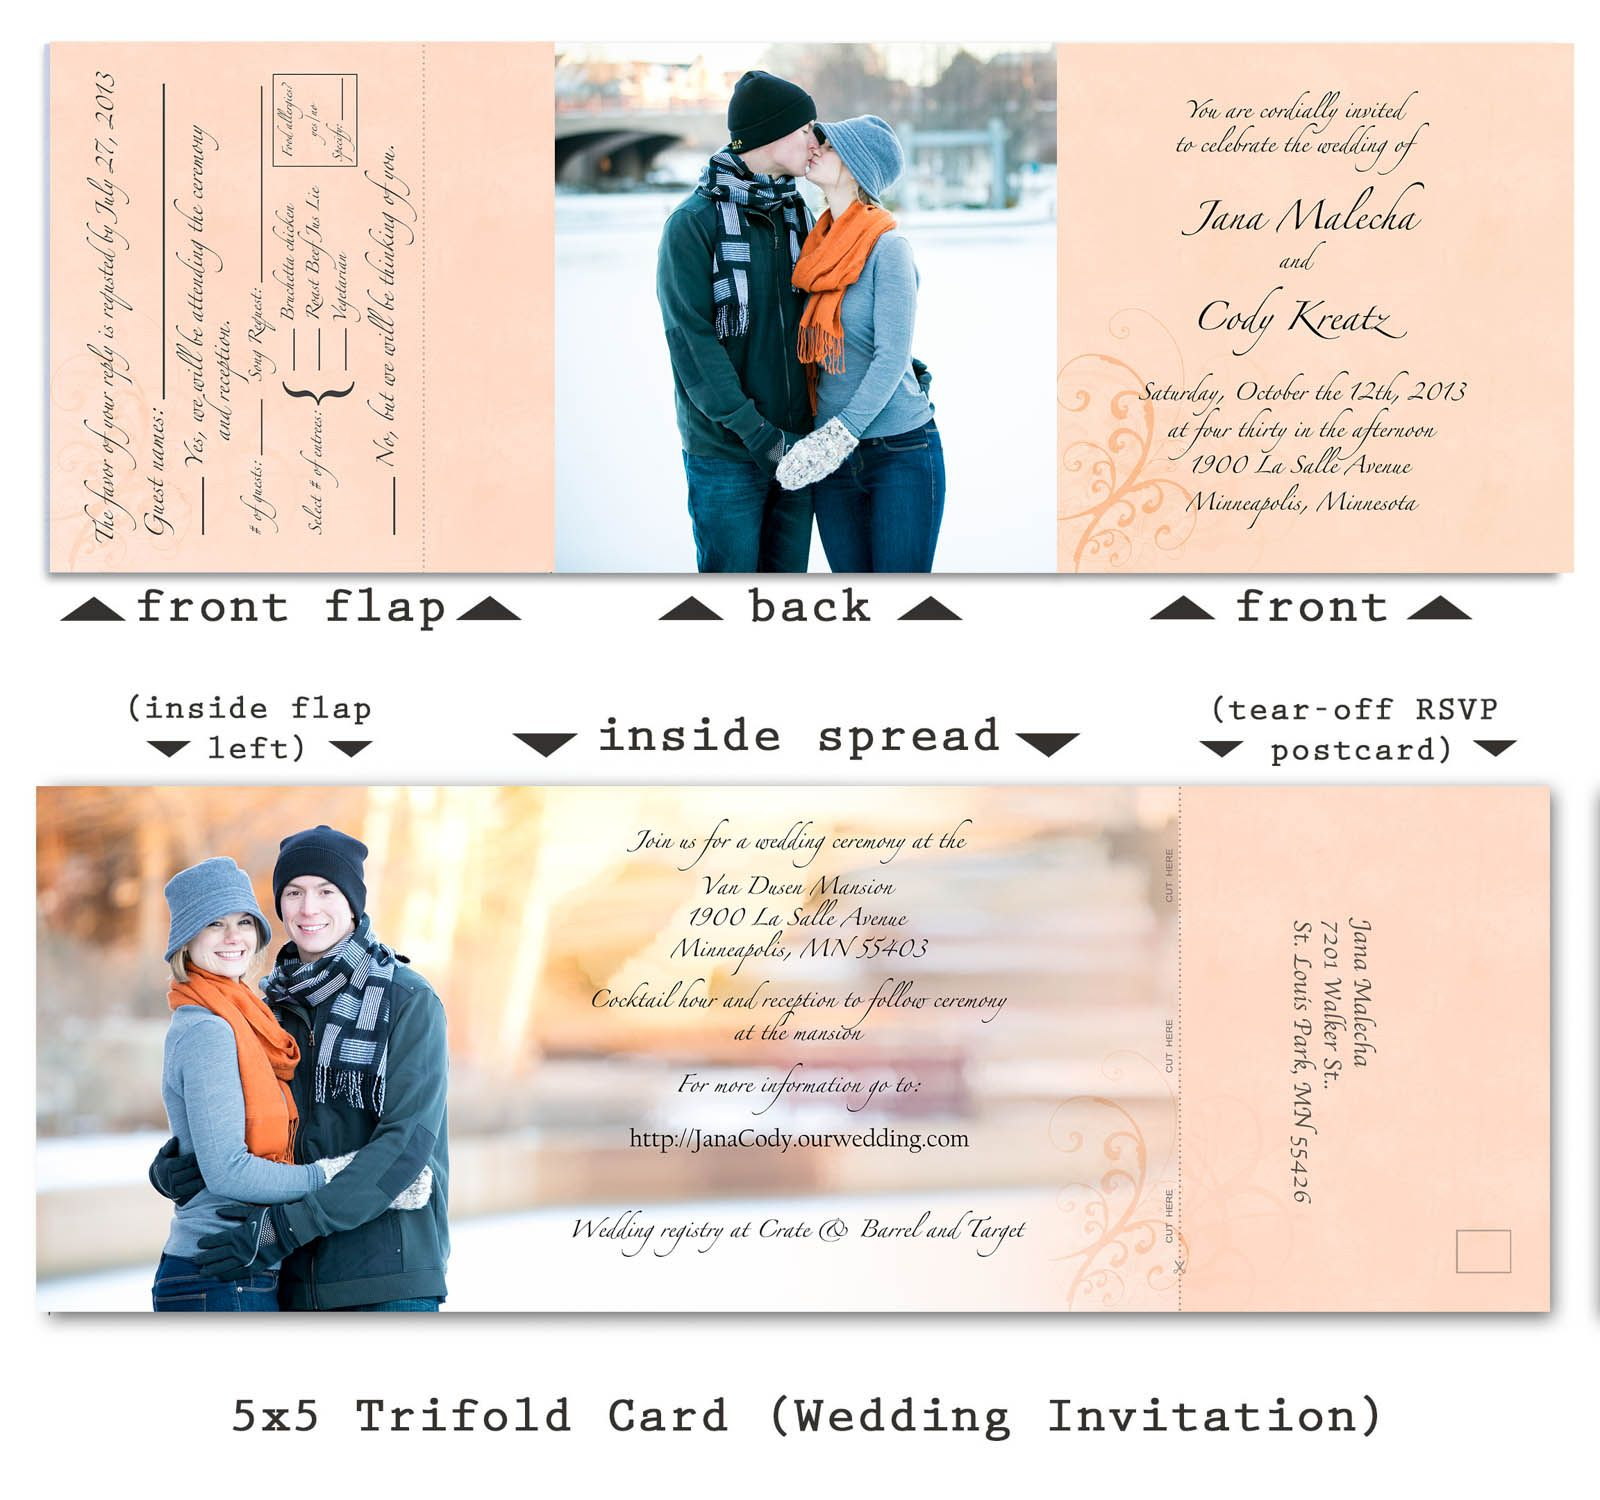 Wedding Invitation With Attached Rsvp Card Wedding Cards Wedding Invitations Wedding Invitation Design